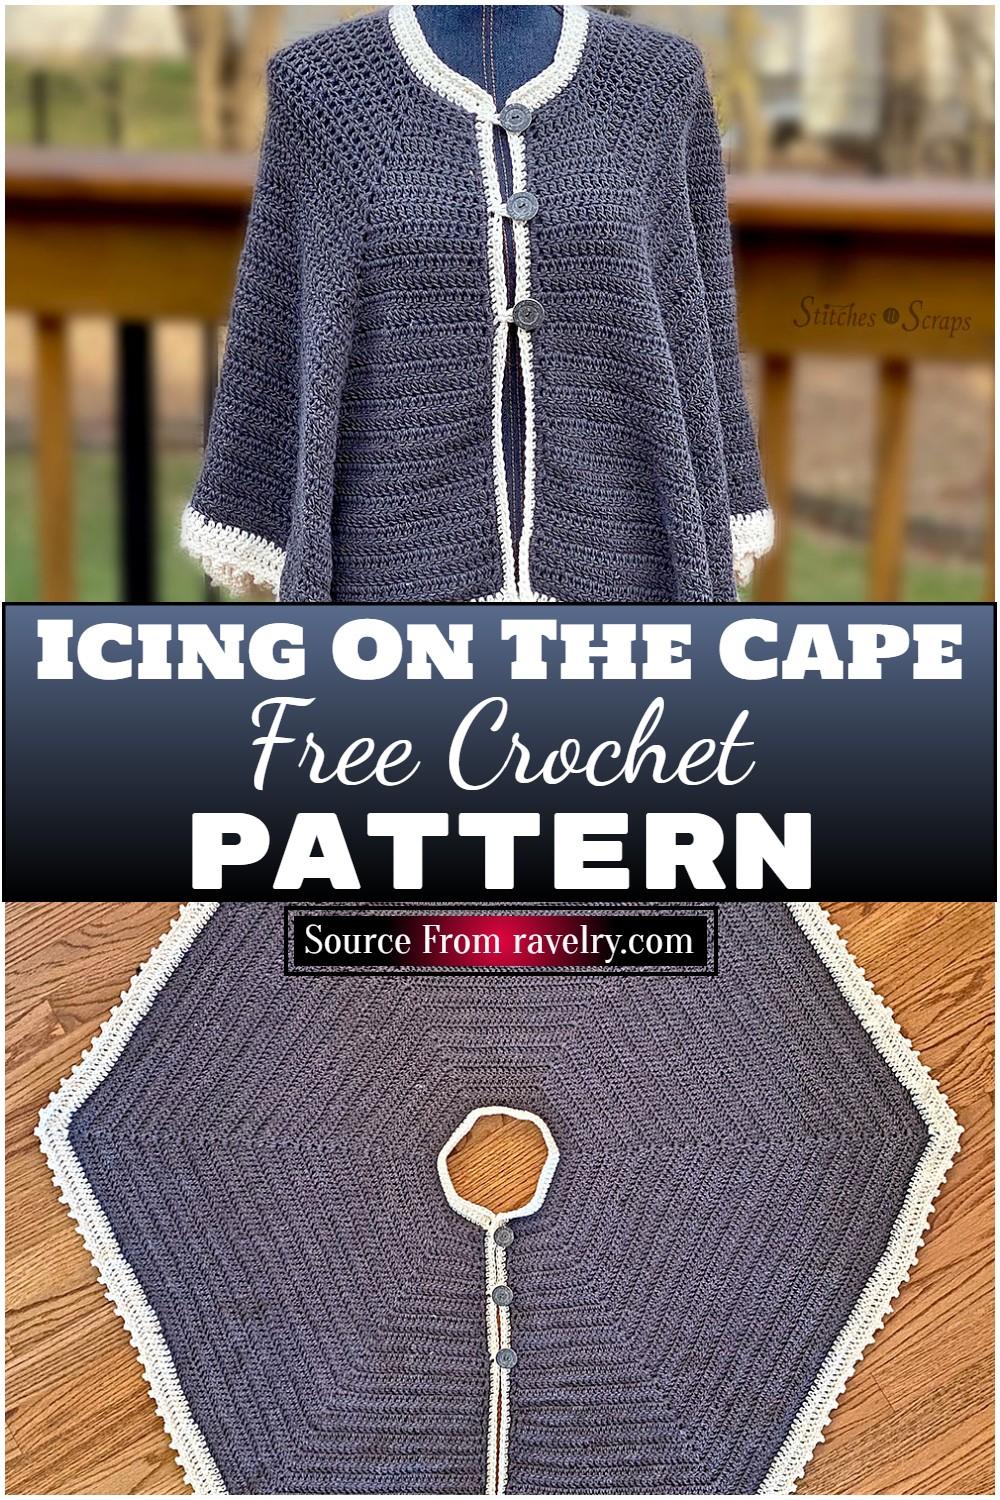 Free Crochet Icing On The Cape Pattern